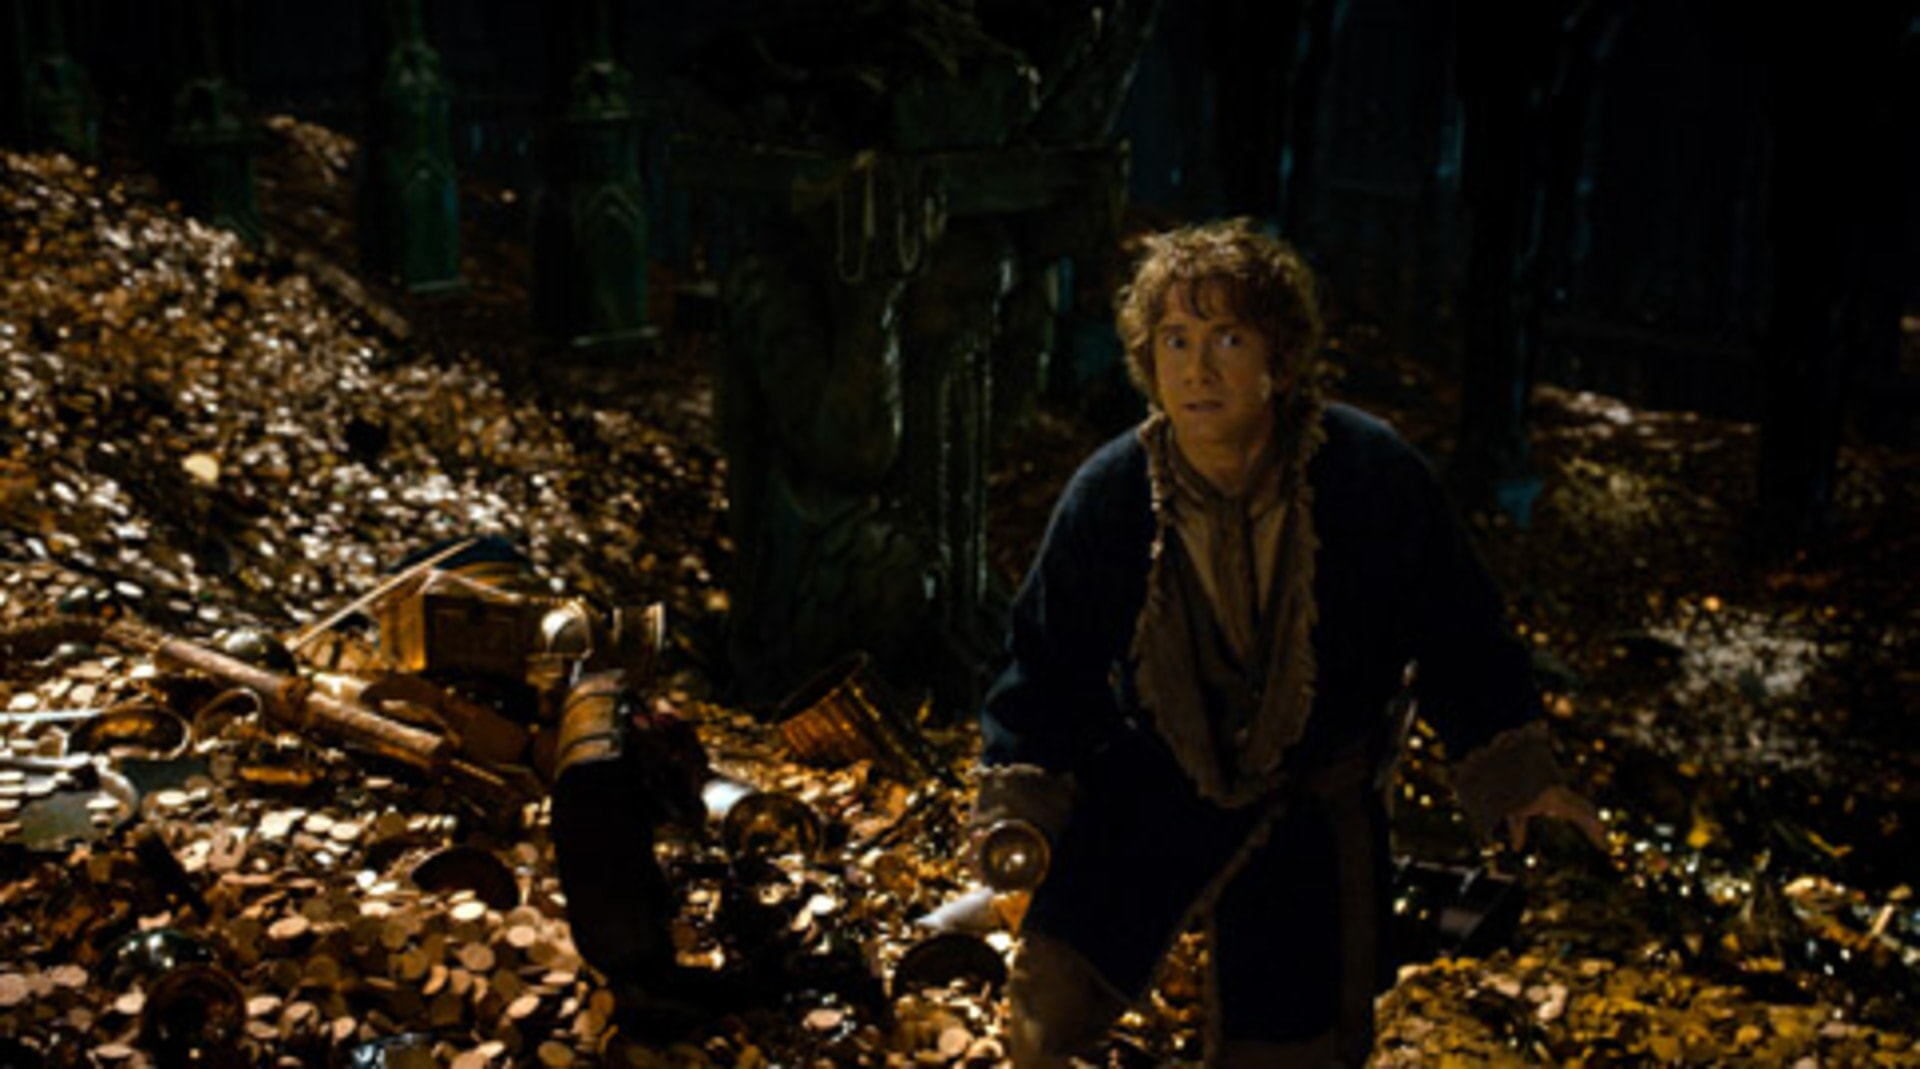 The Hobbit: The Desolation of Smaug - Image 26